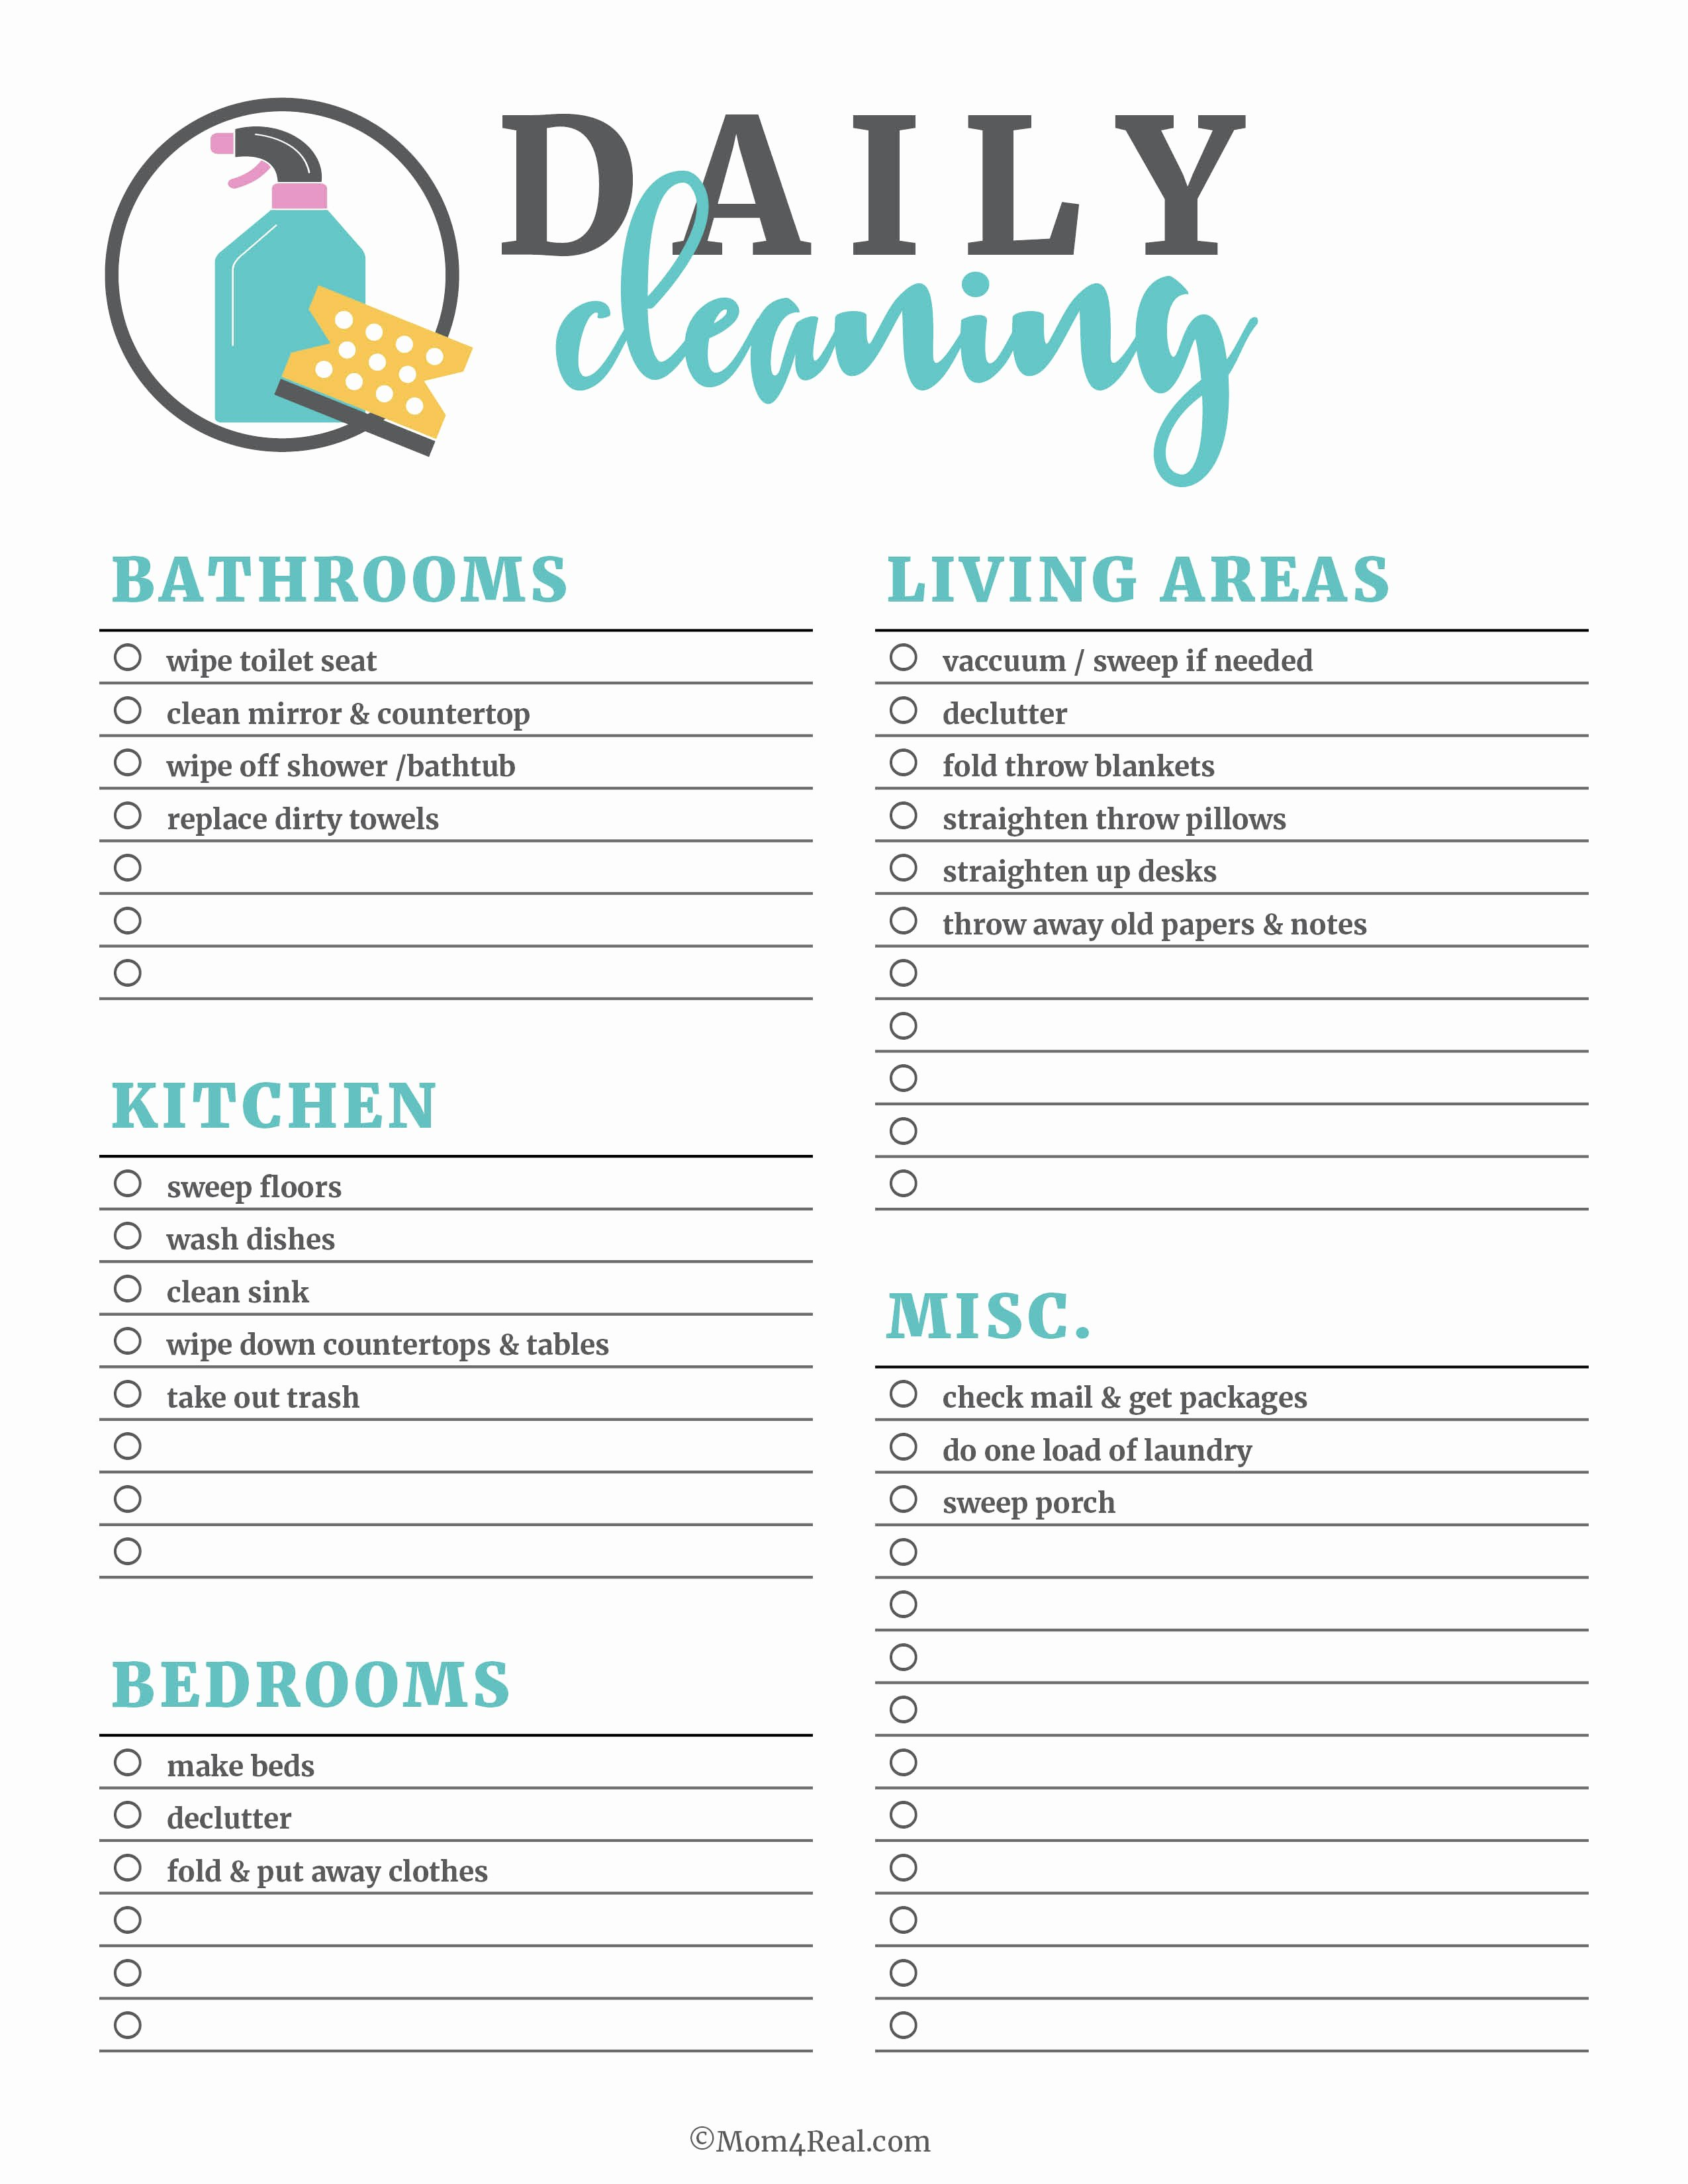 House Cleaning Checklist Template Lovely Printable Cleaning Checklists for Daily Weekly and